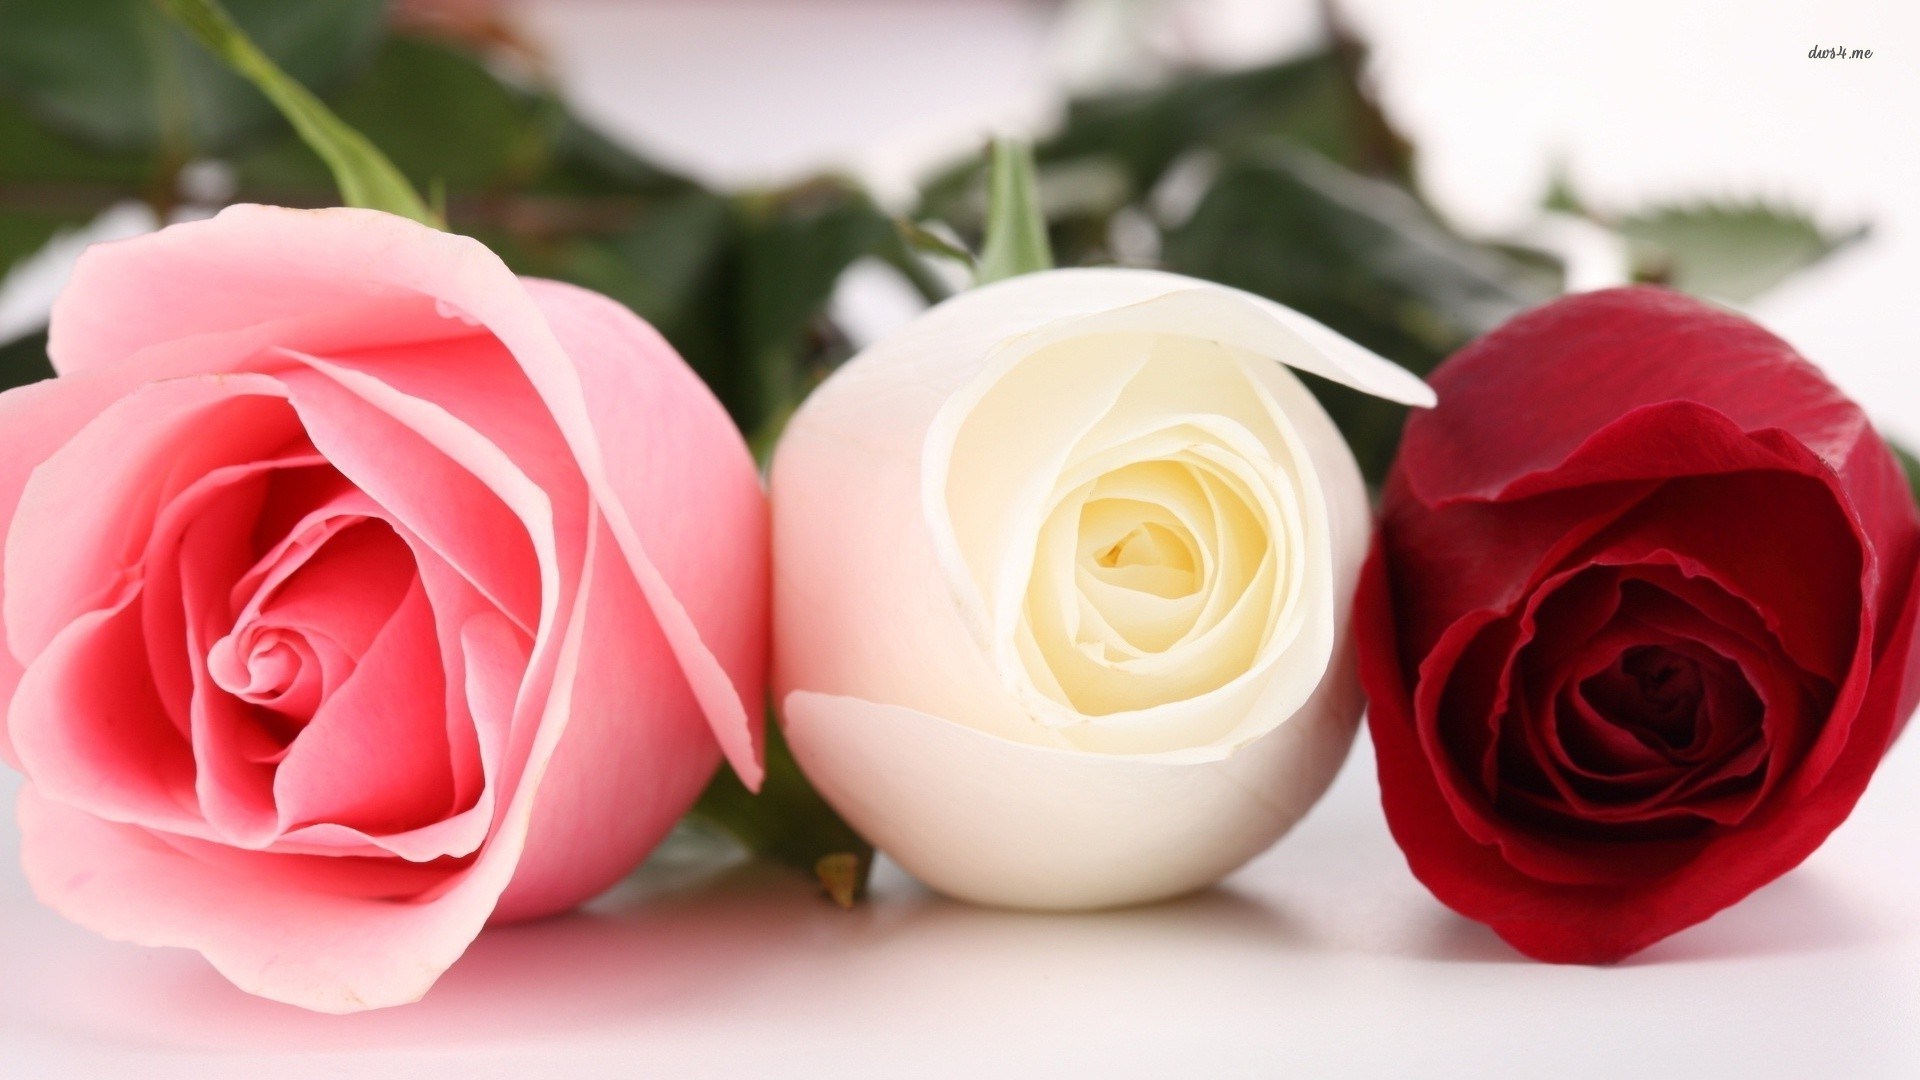 13866 Pink White And Red Roses 1920x1080 Flower